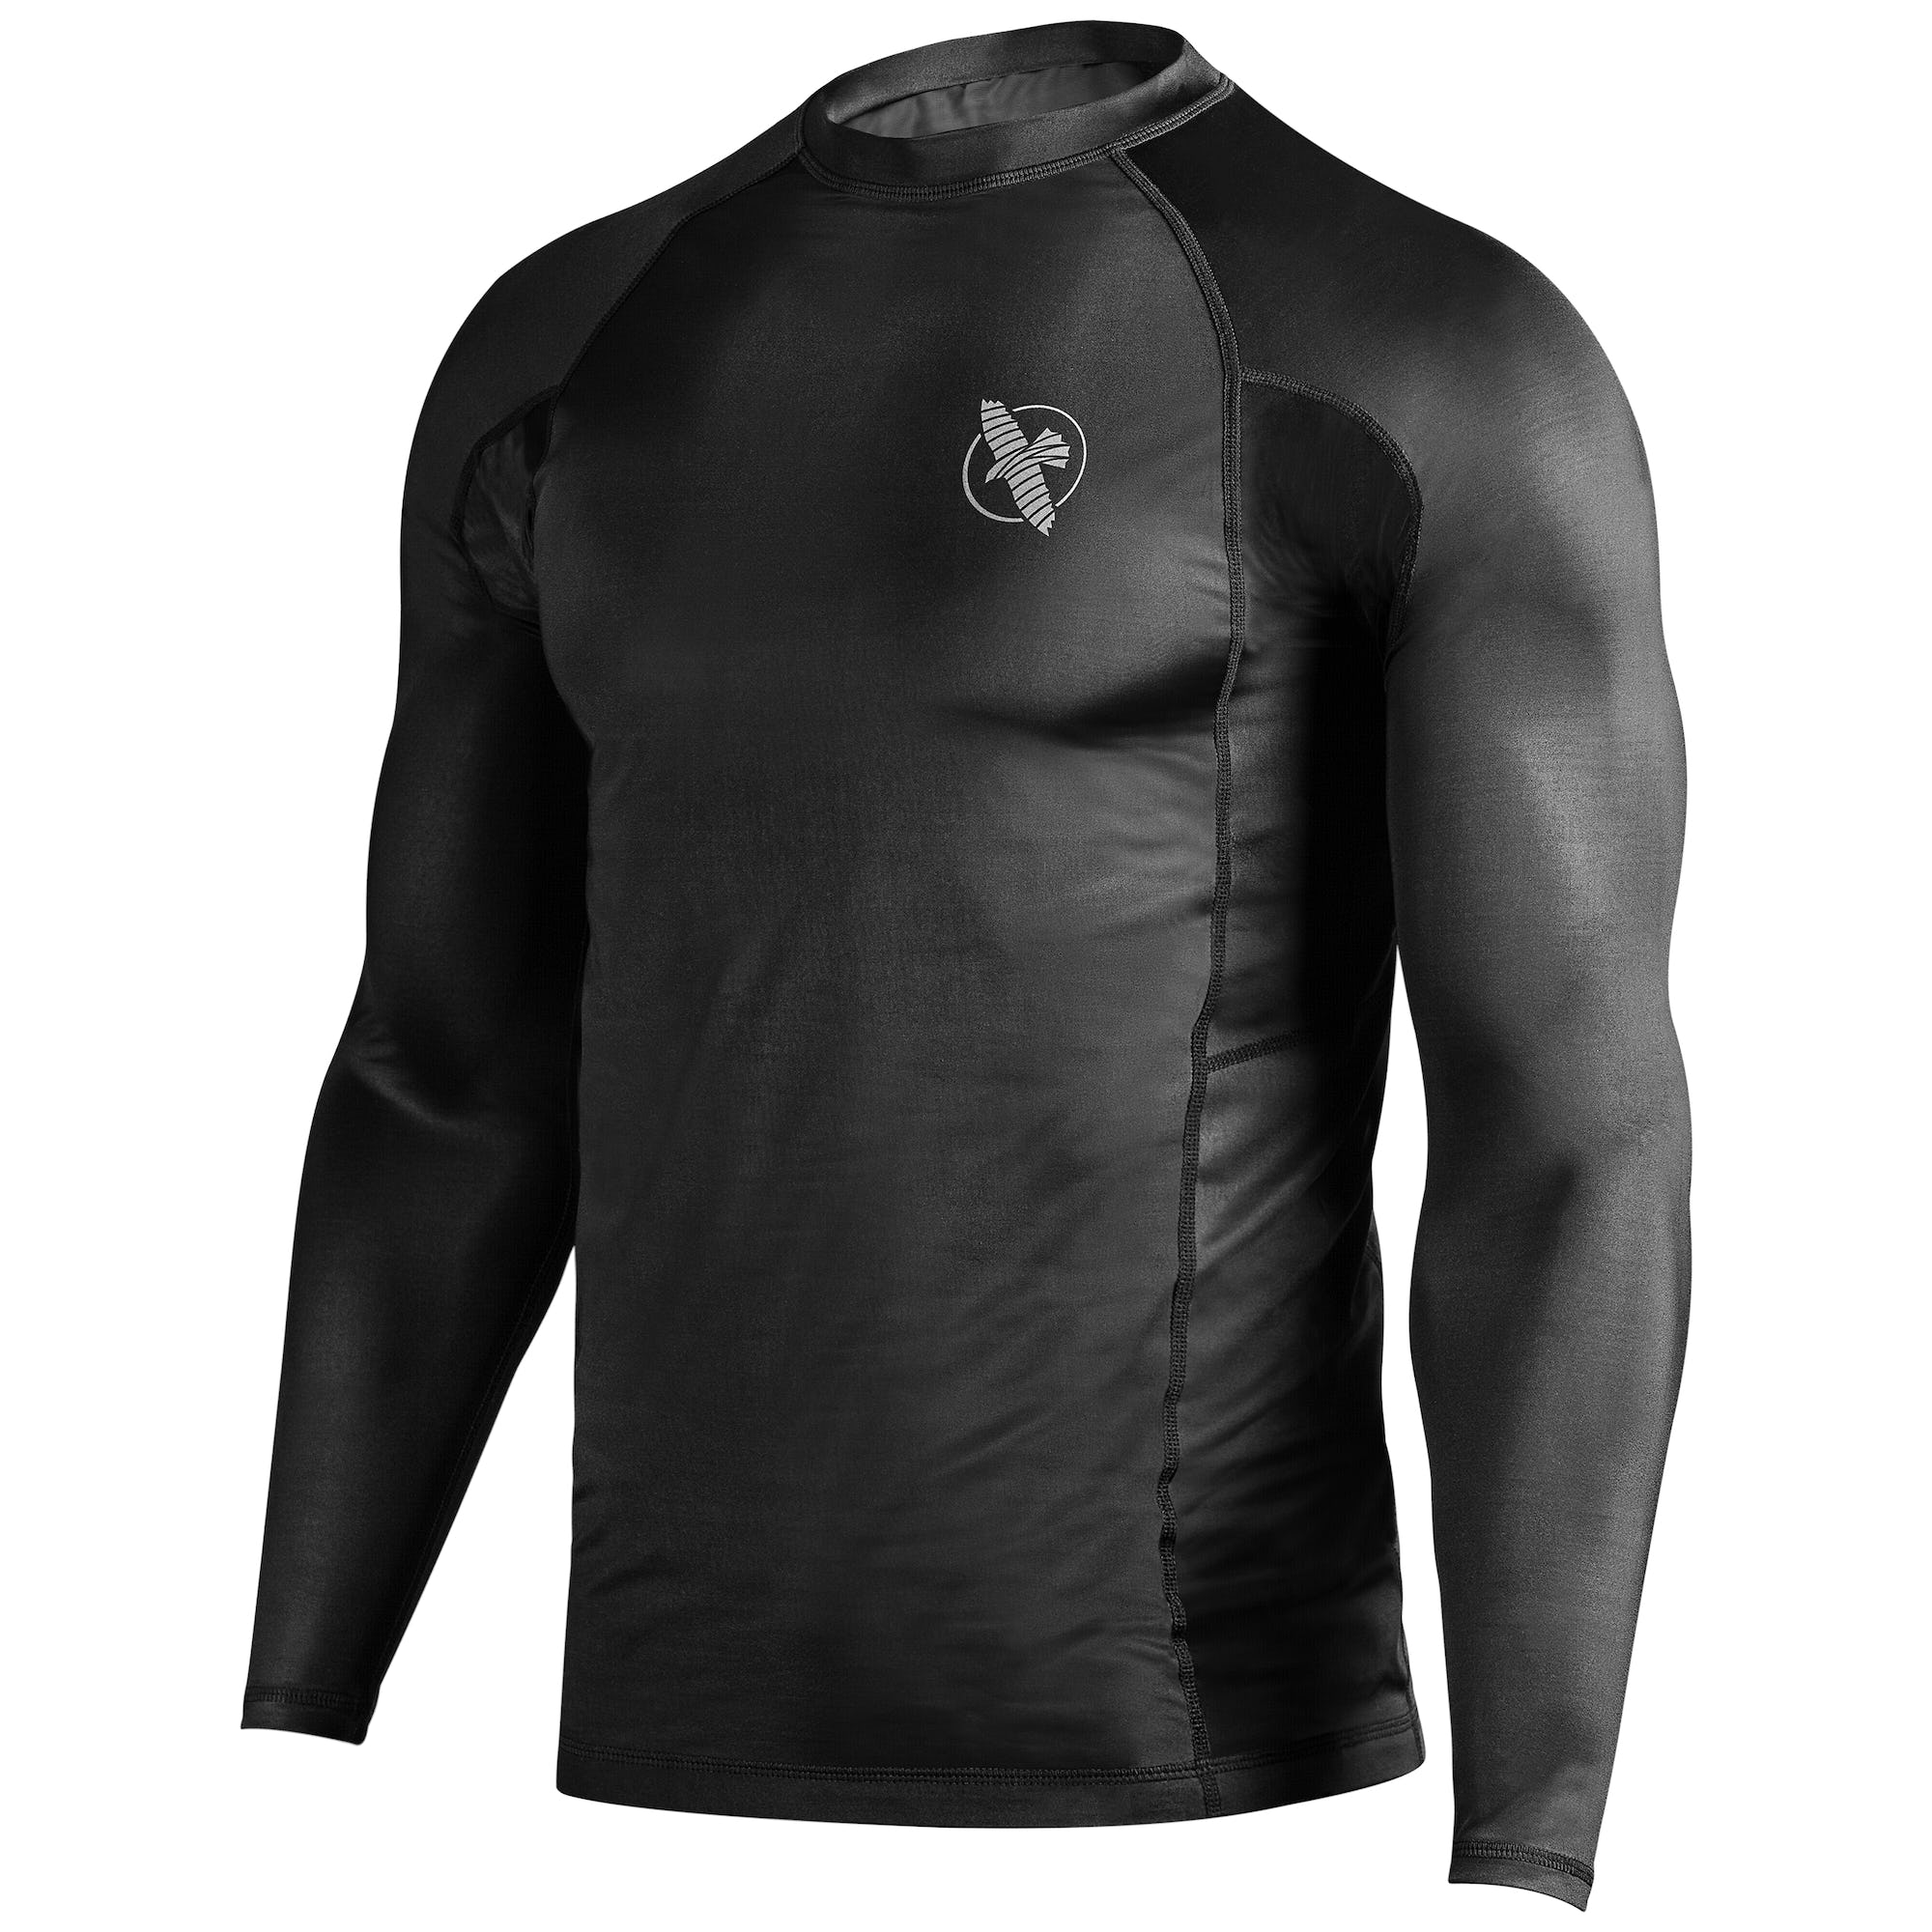 4d3af2069b Long Sleeve Rash Guard. Lightweight and durable rash guard that helps  maximize performance.